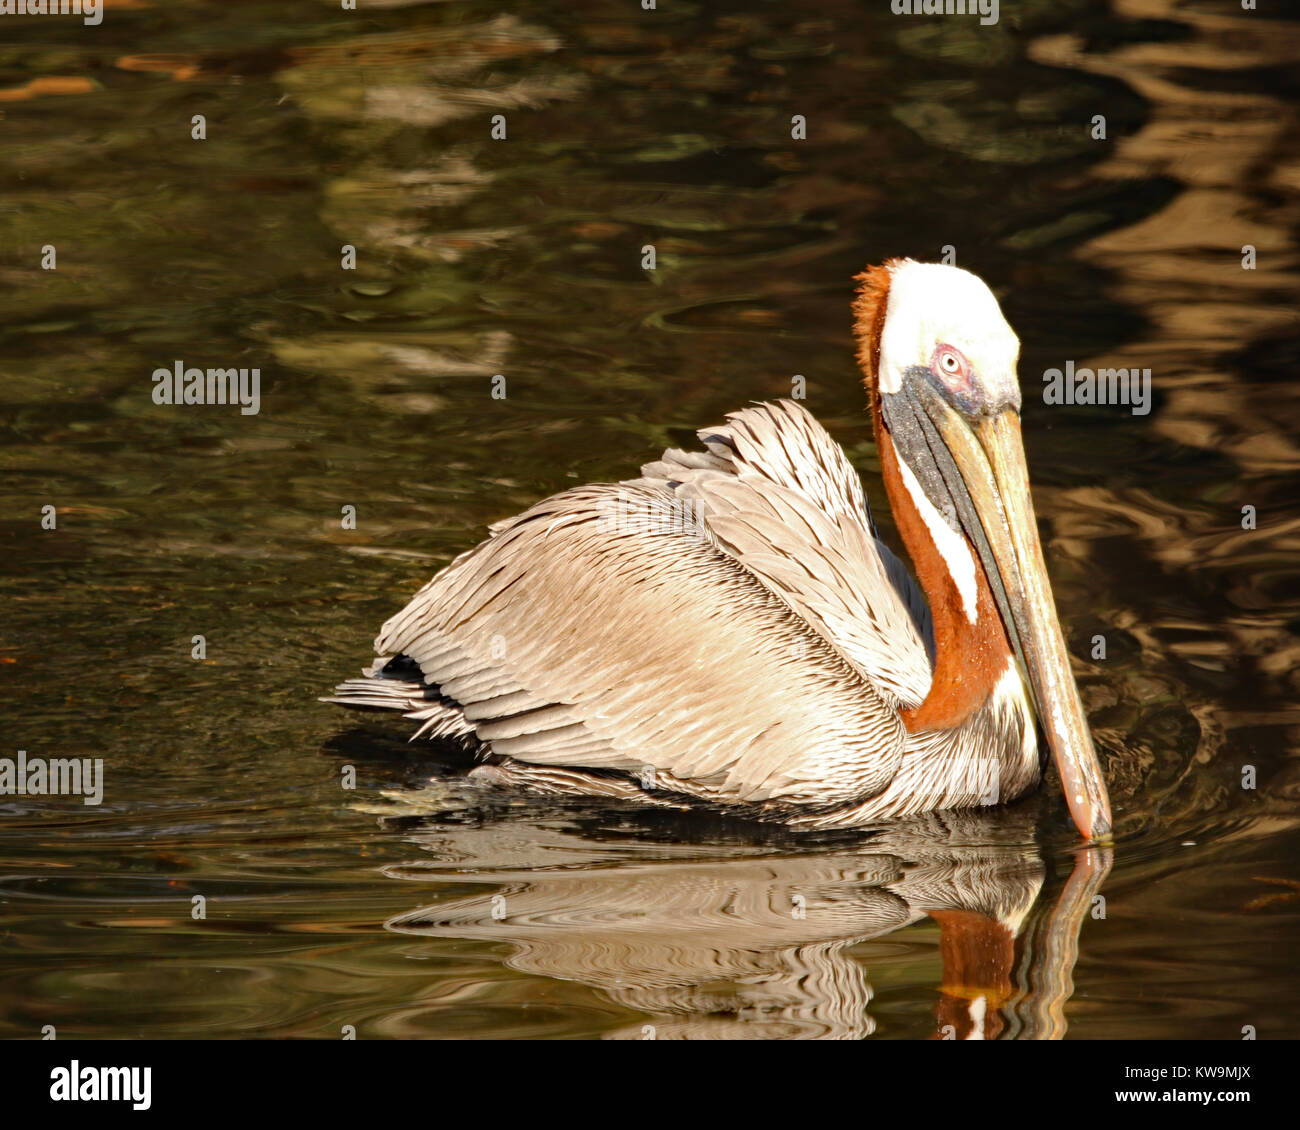 During breeding season the plumage on the Brown Pelican turns from a golden yellow color to a deep reddish-brown - Stock Image